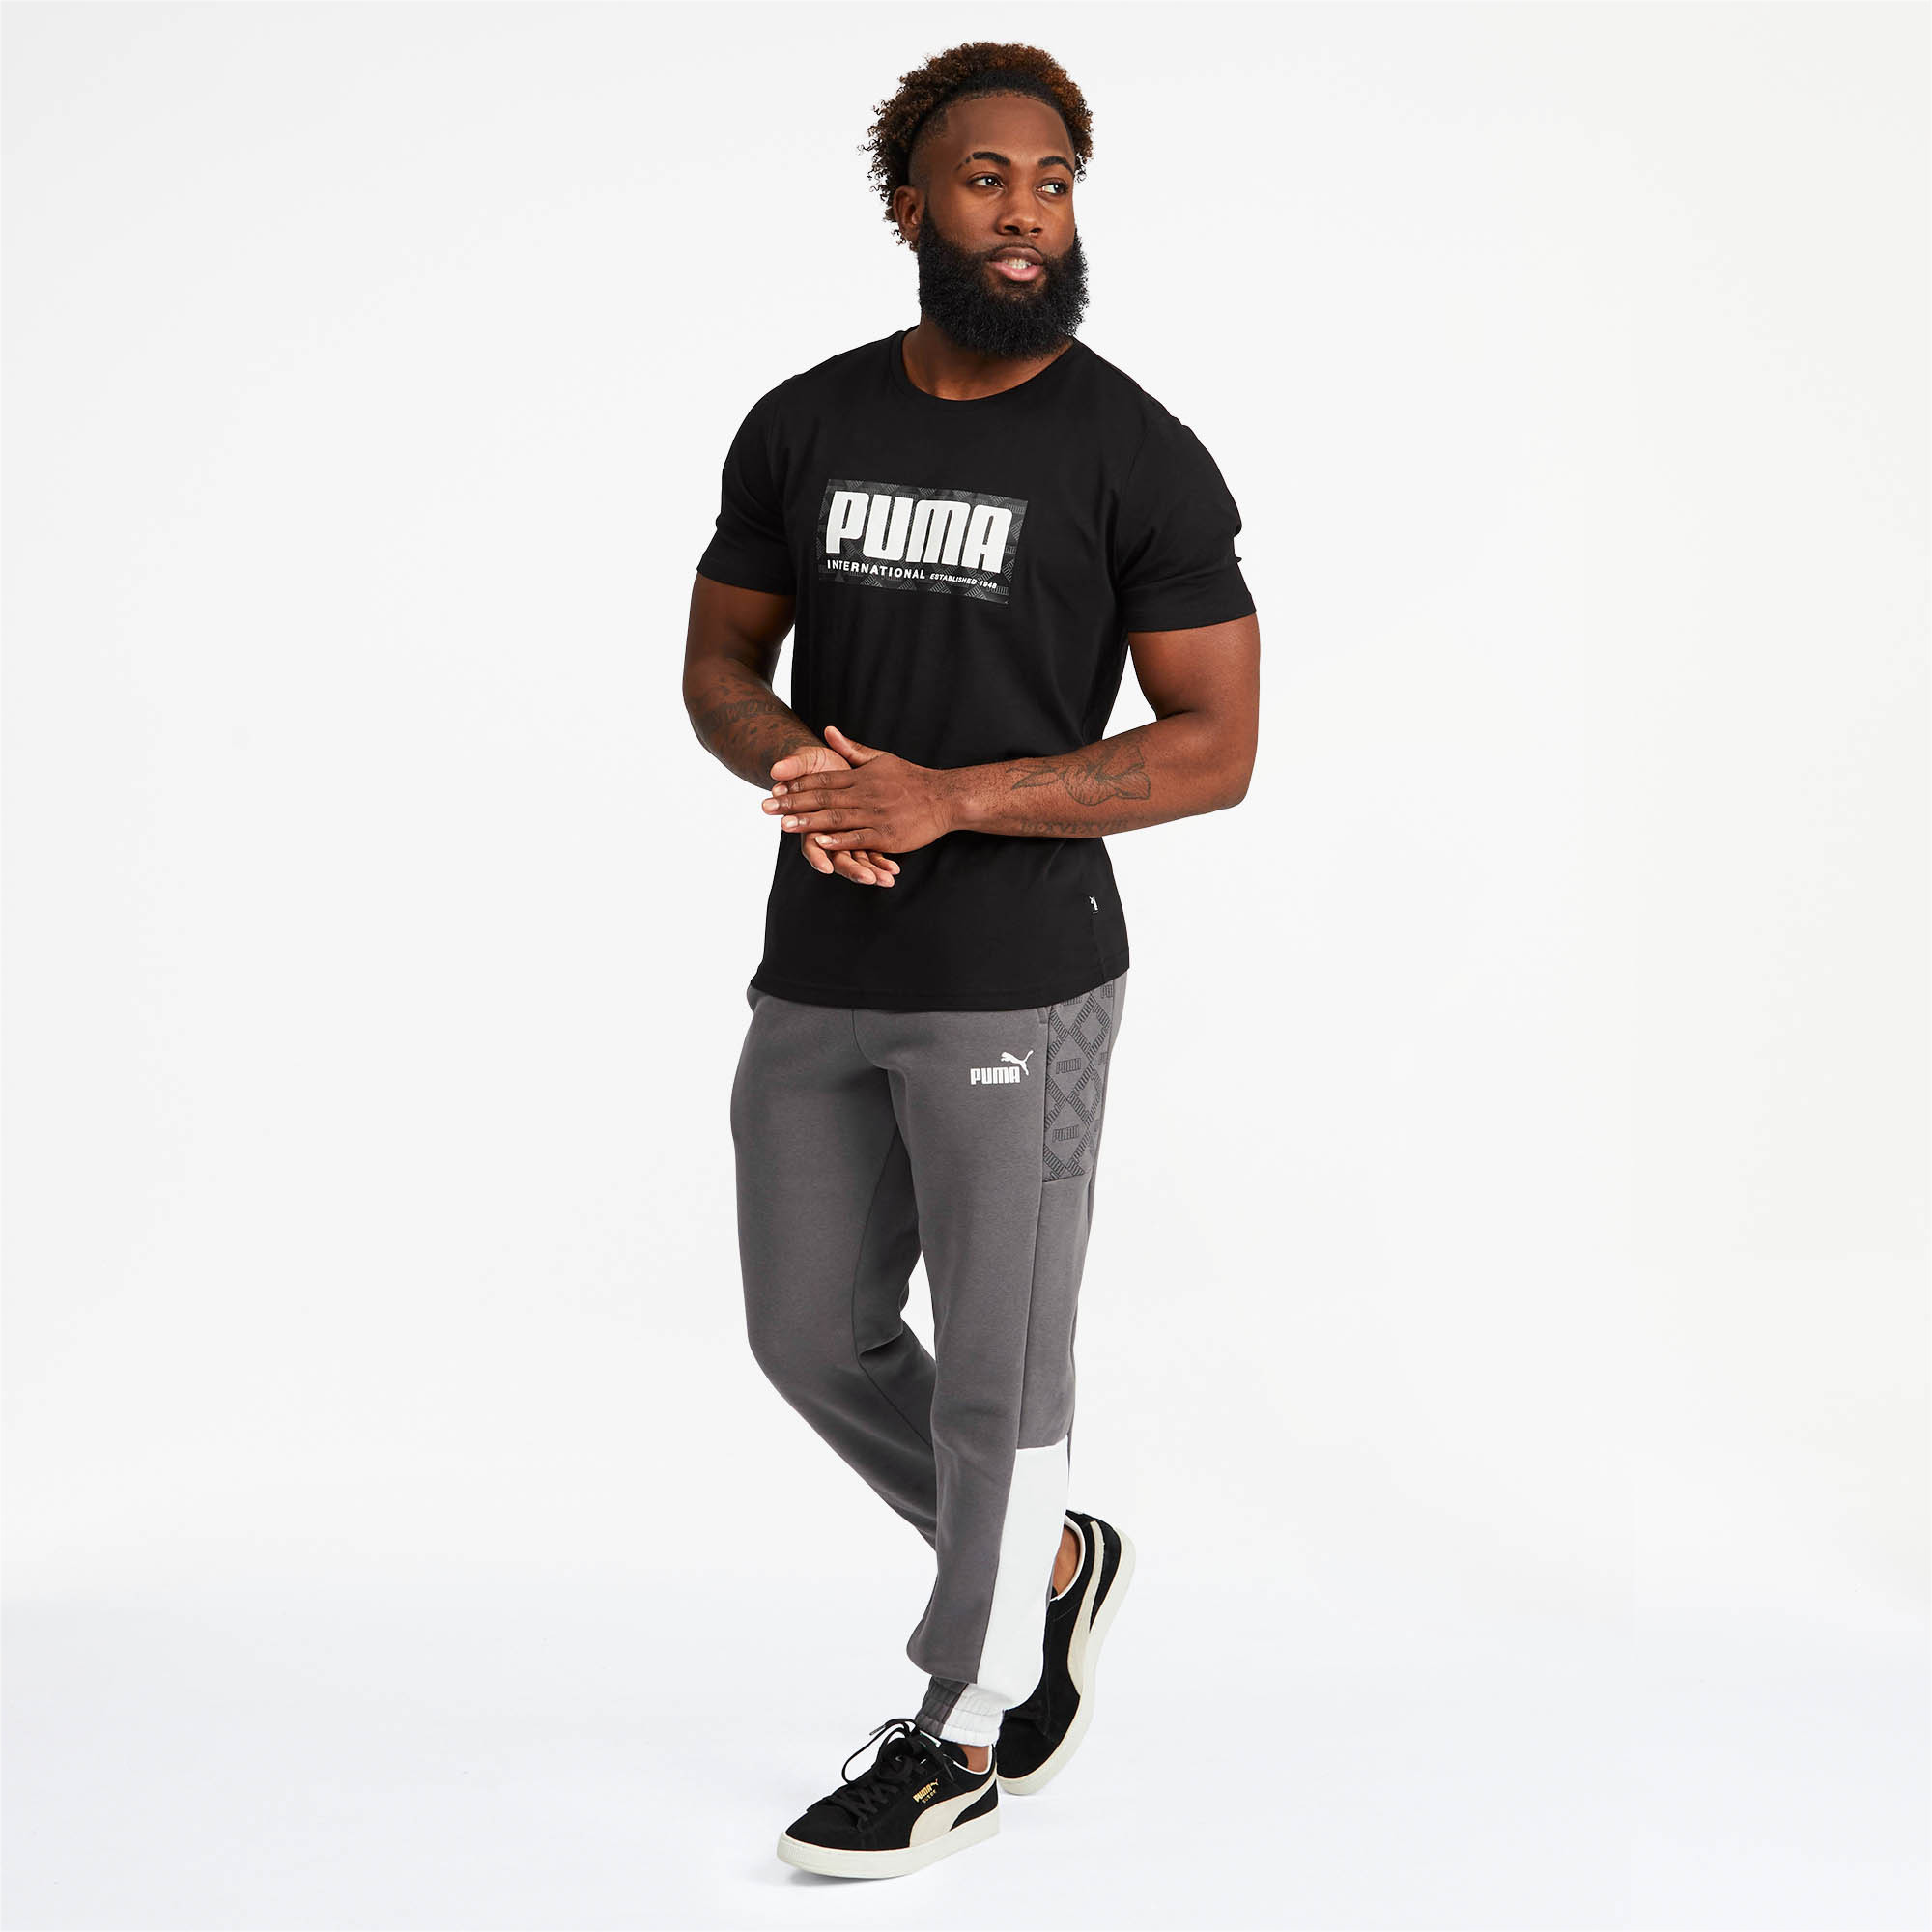 PUMA-Logo-AOP-Pack-Men-039-s-Graphic-Tee-Men-Tee-Basics thumbnail 6